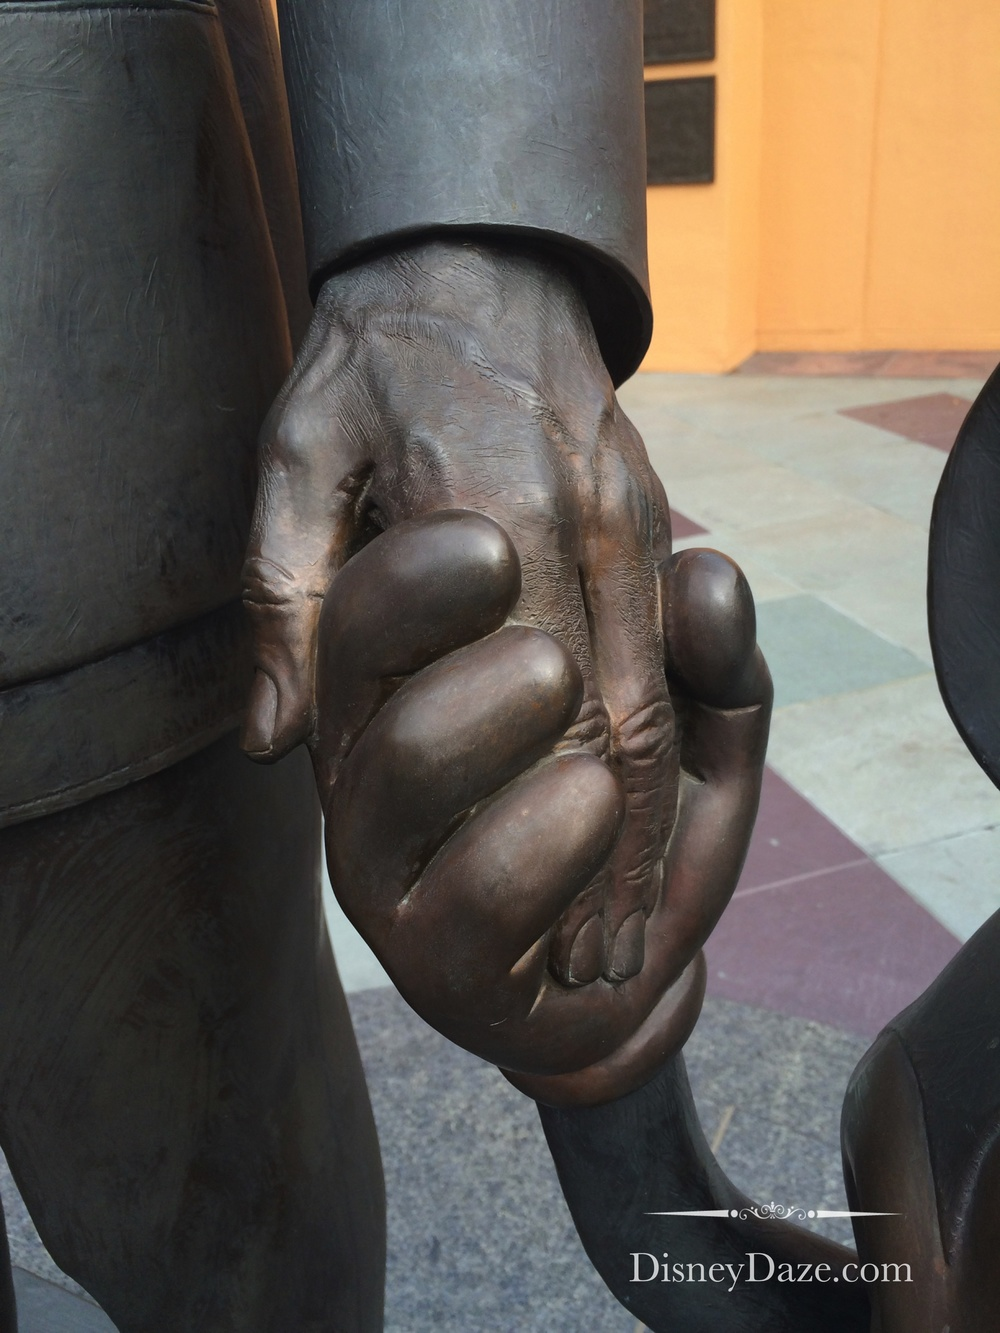 It is said that Blaine Gibson spent much time thinking about how he would sculpt Walt holding Mickey's hand.